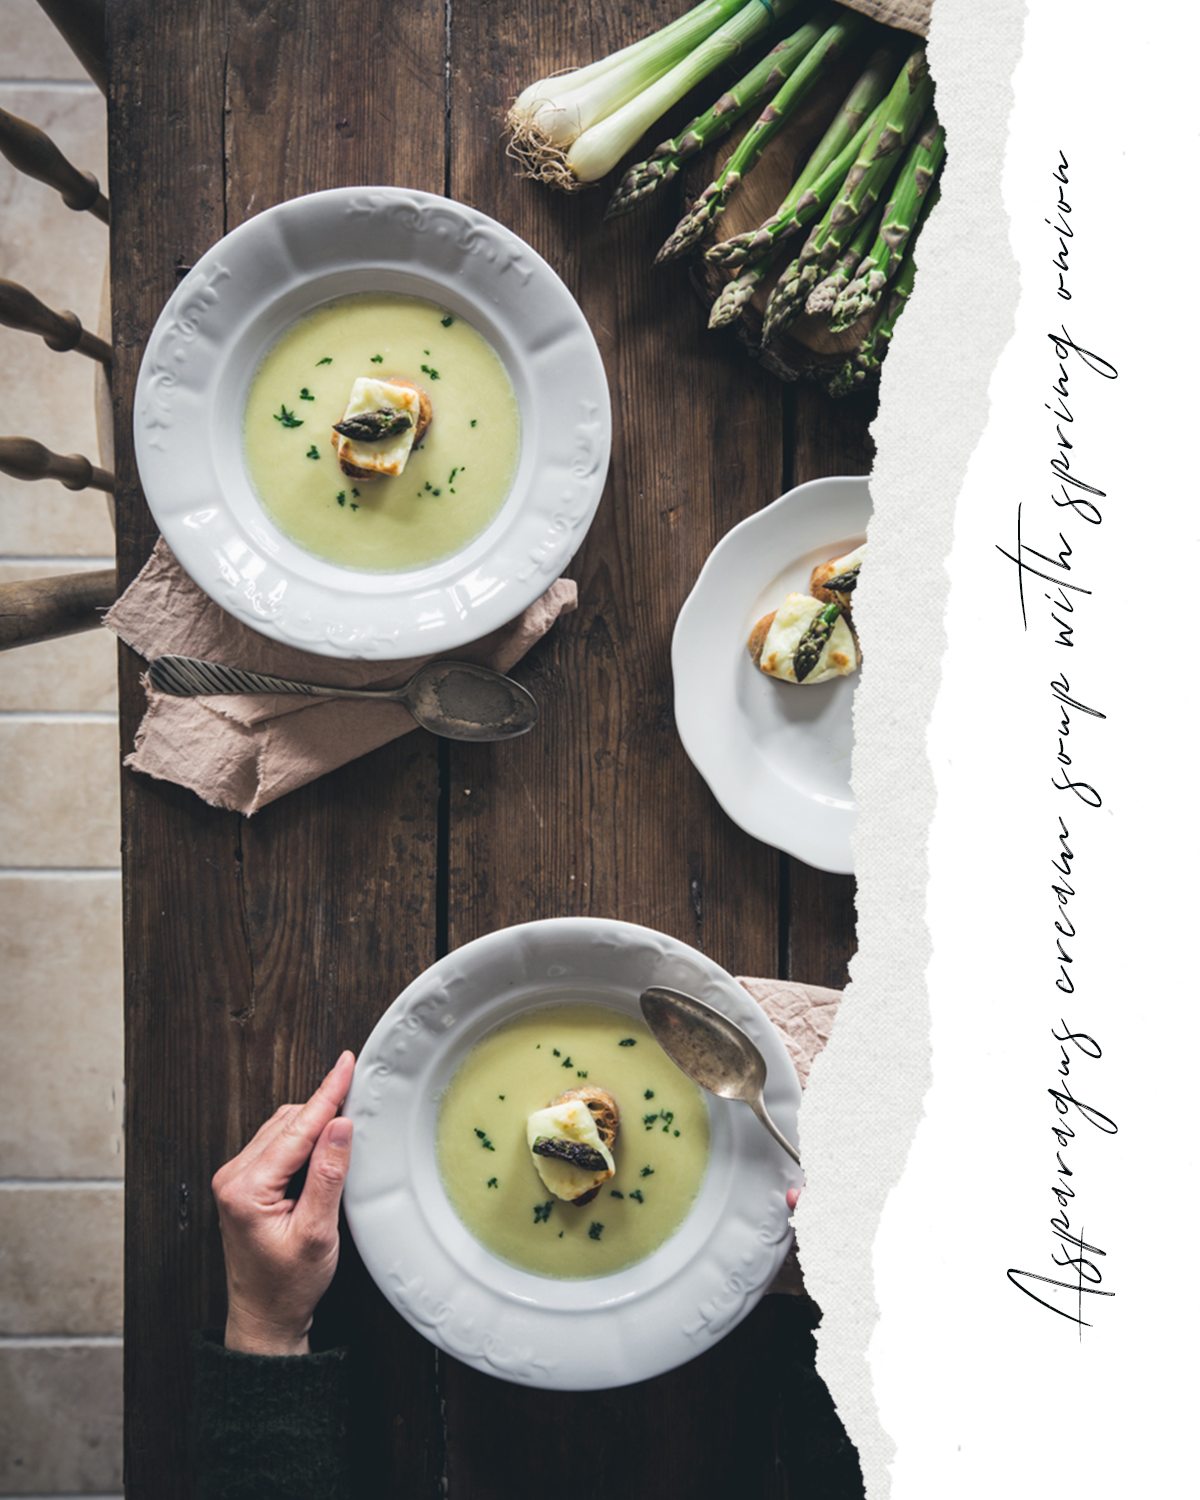 spárgakrémleves újhagymával az Emlékek Íze konyhájából www.emlekekize.hu asparagus cream soup with spring onions from the Taste of Memories Hungarian country kitchen www.tasteofmemories.com